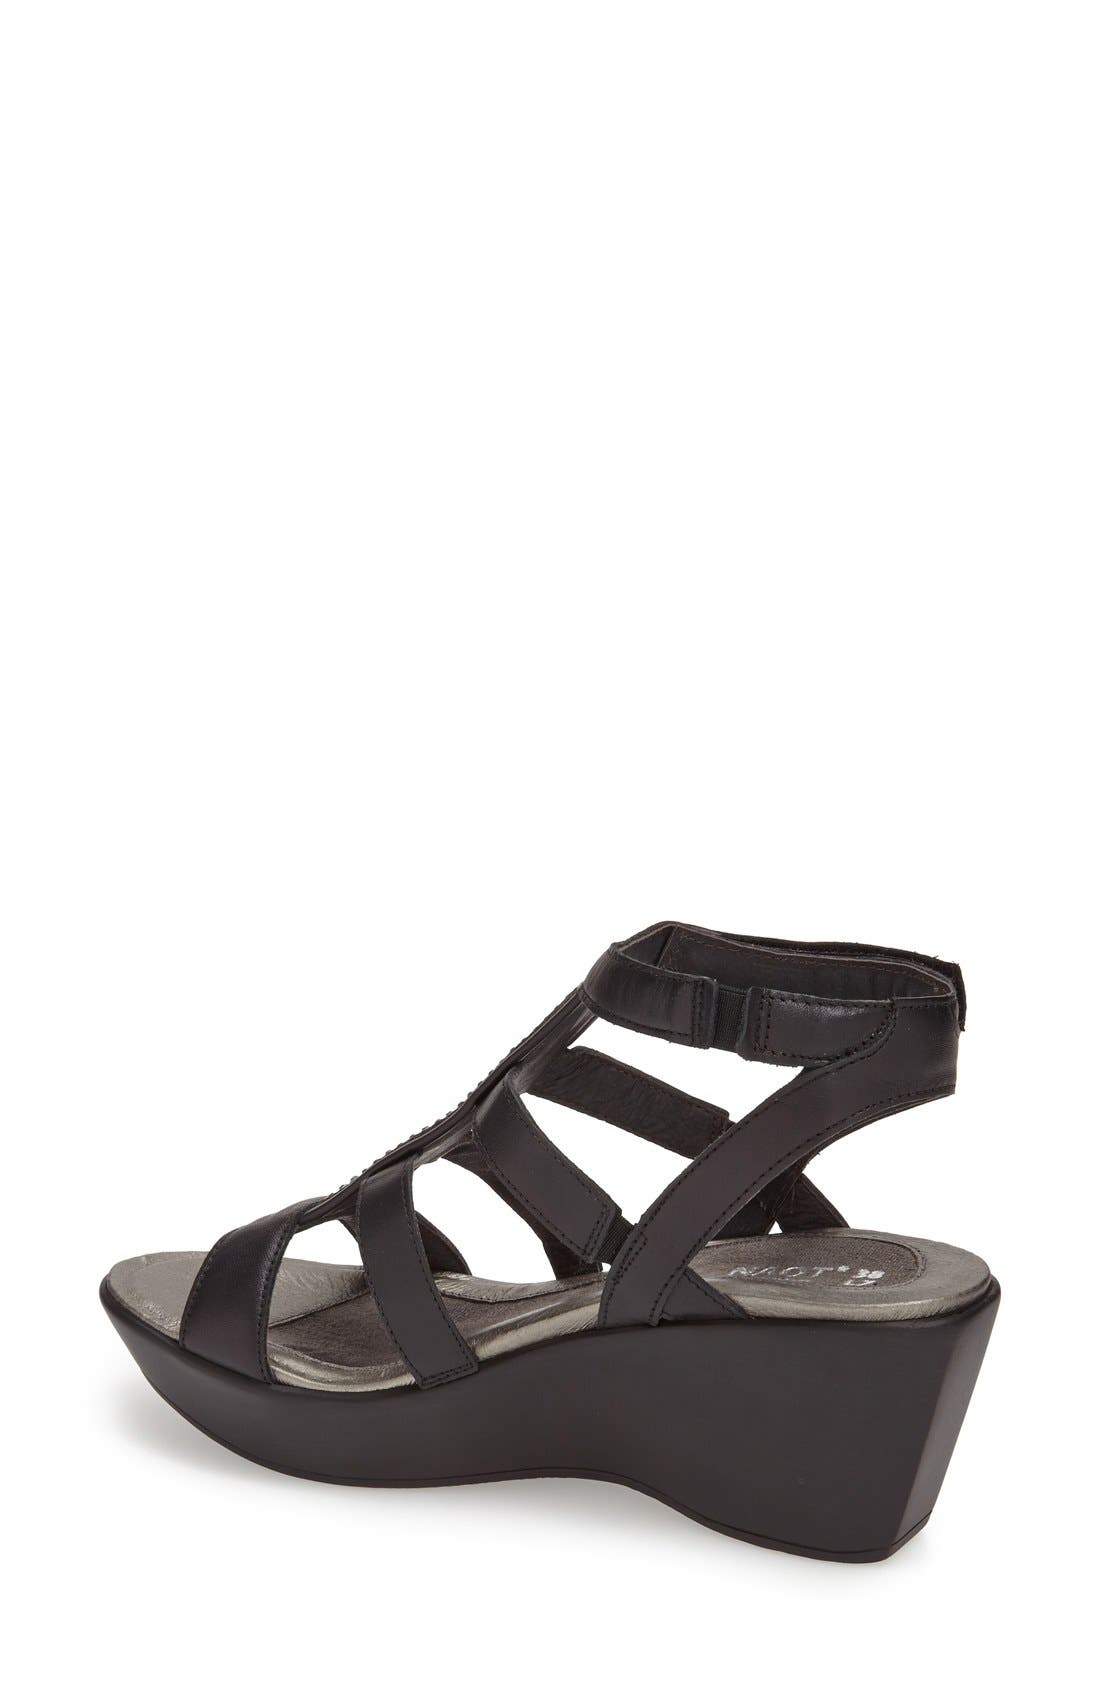 'Mystery' Platform Wedge Sandal,                             Alternate thumbnail 17, color,